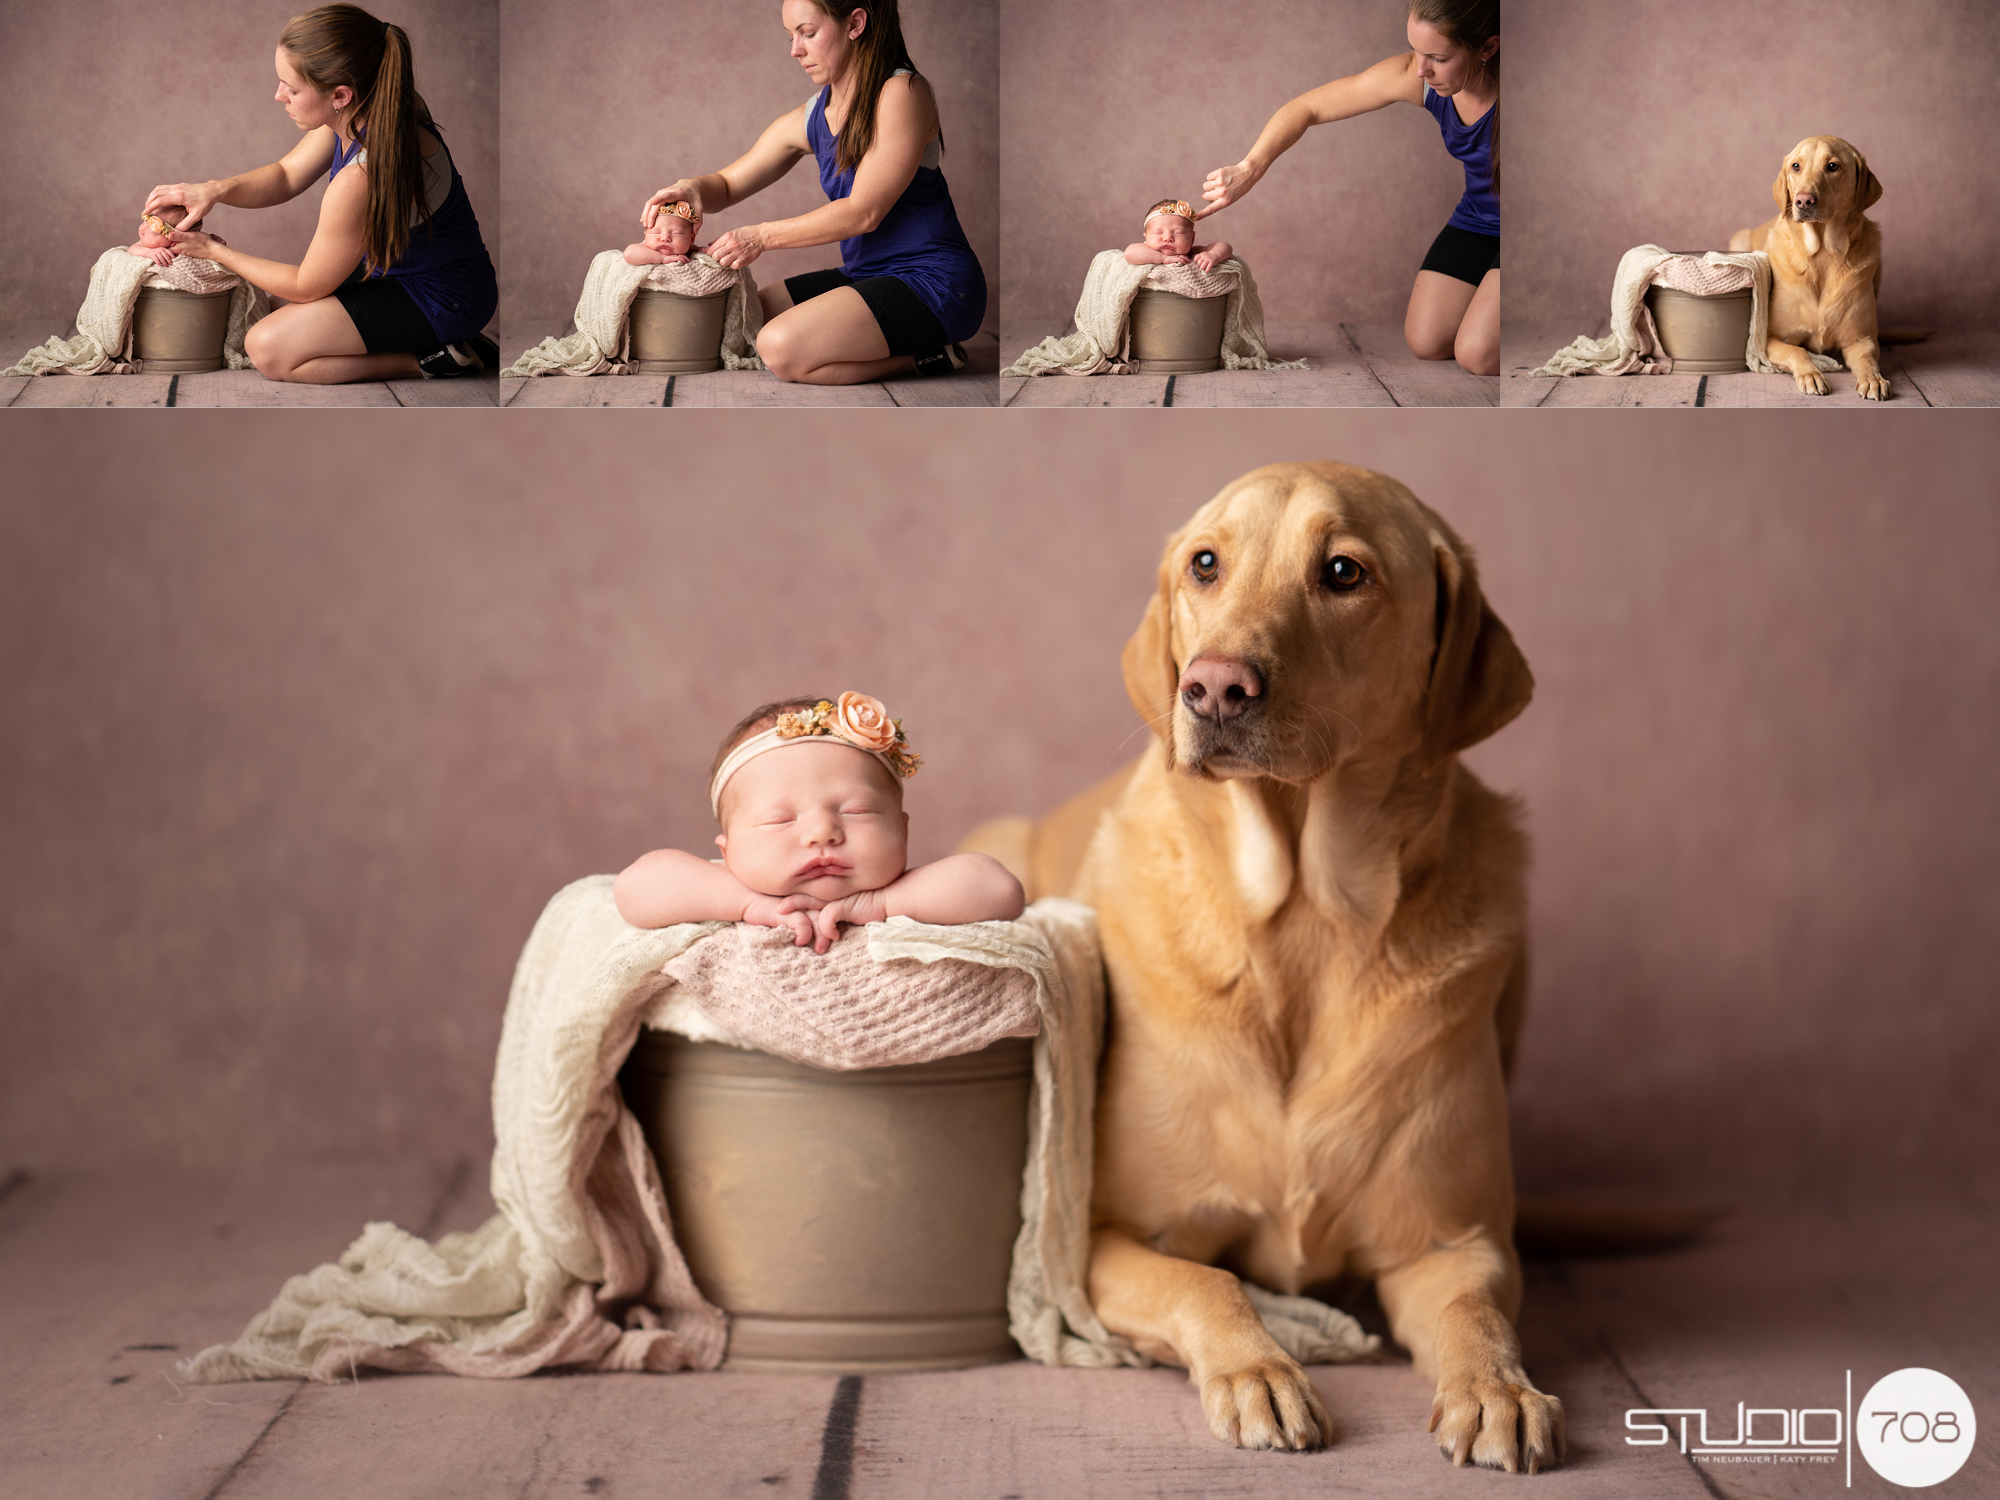 Newborn in a bucket with a labrador sitting next to her